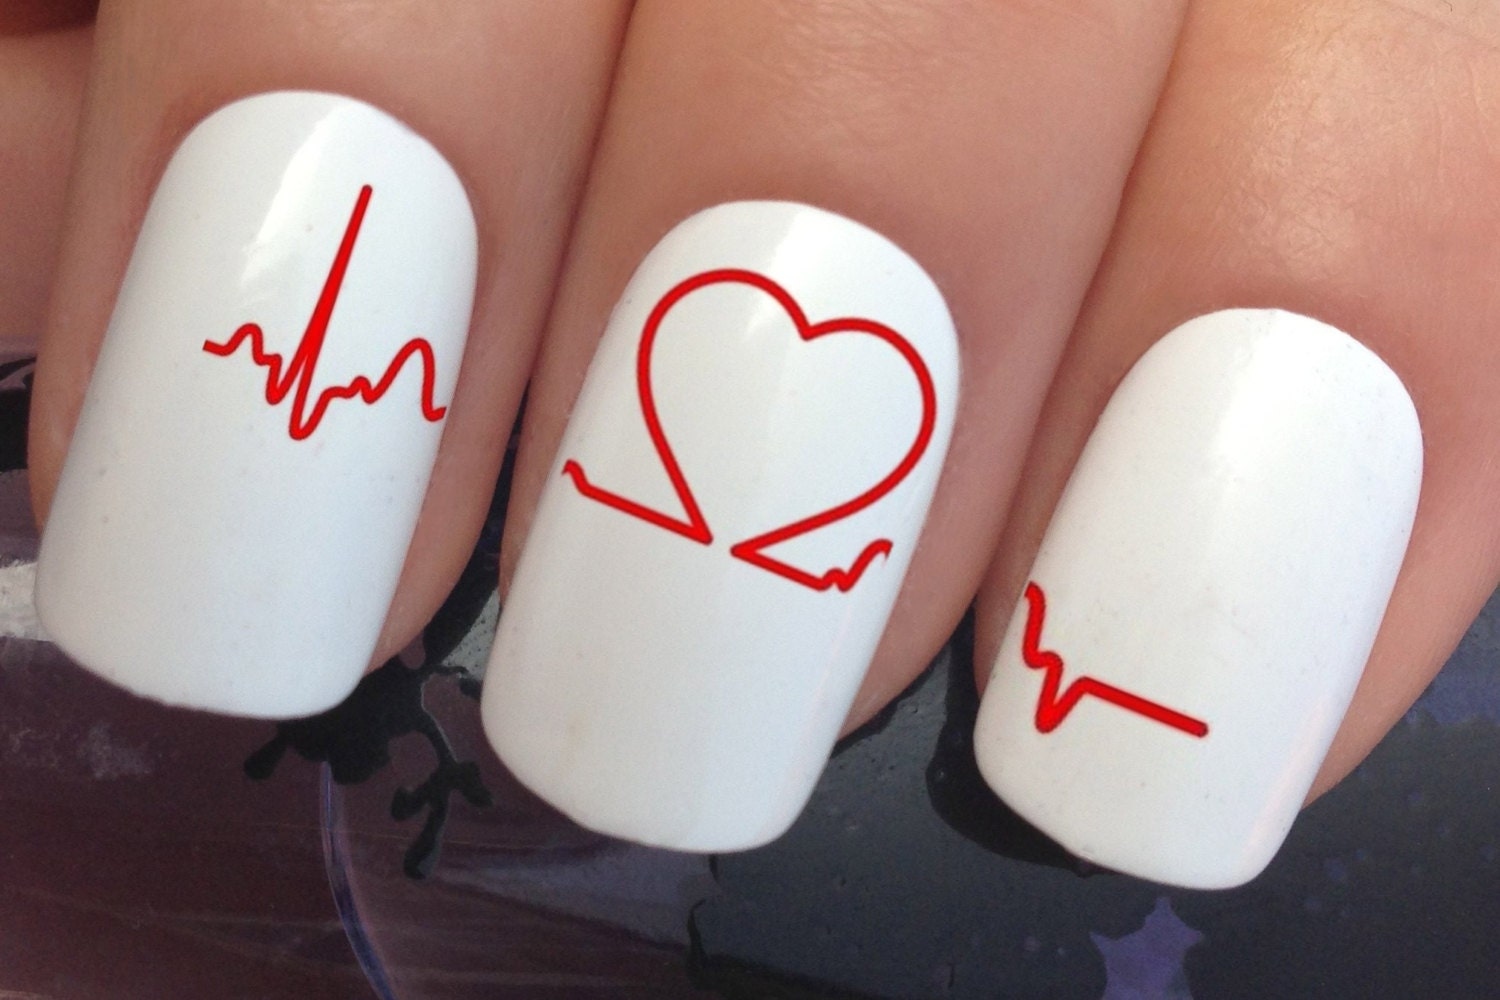 nail decals #348 pregnancy fetal heartbeat line water ...